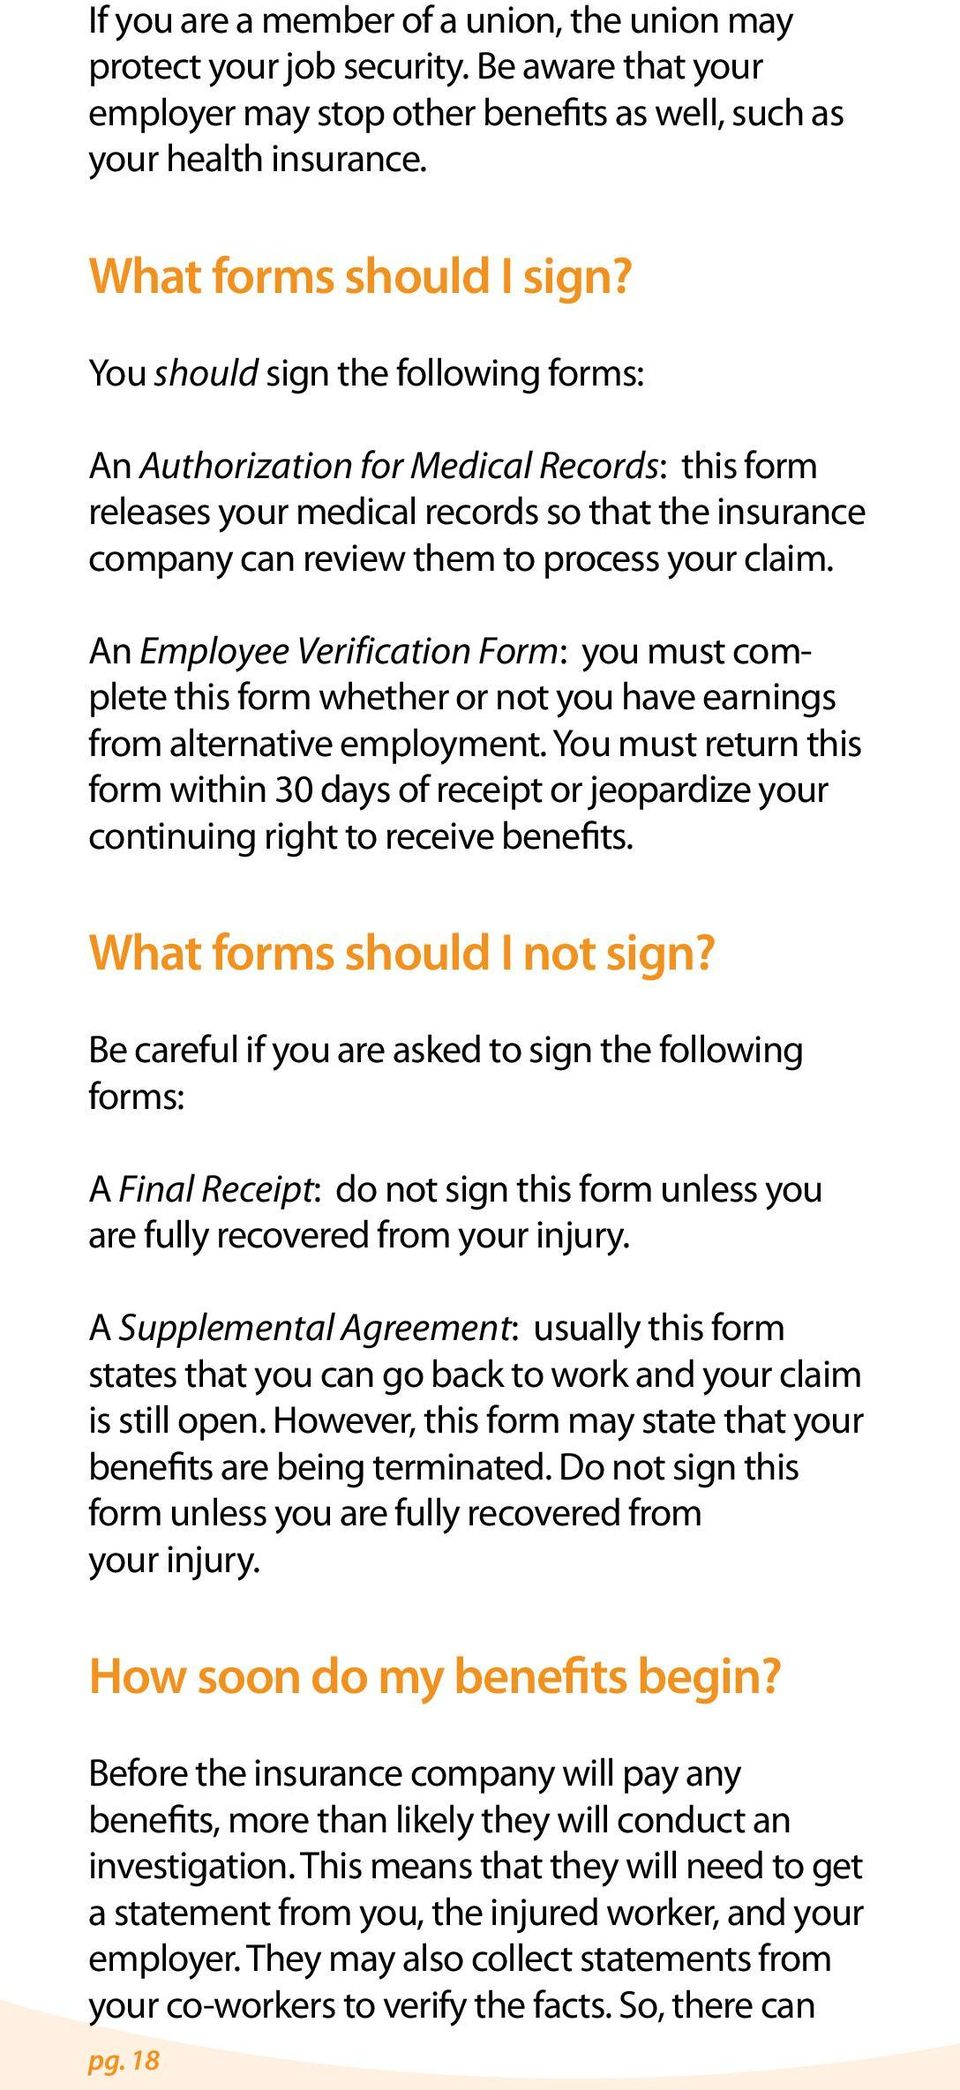 An Employee Verification Form: you must complete this form whether or not you have earnings from alternative employment.